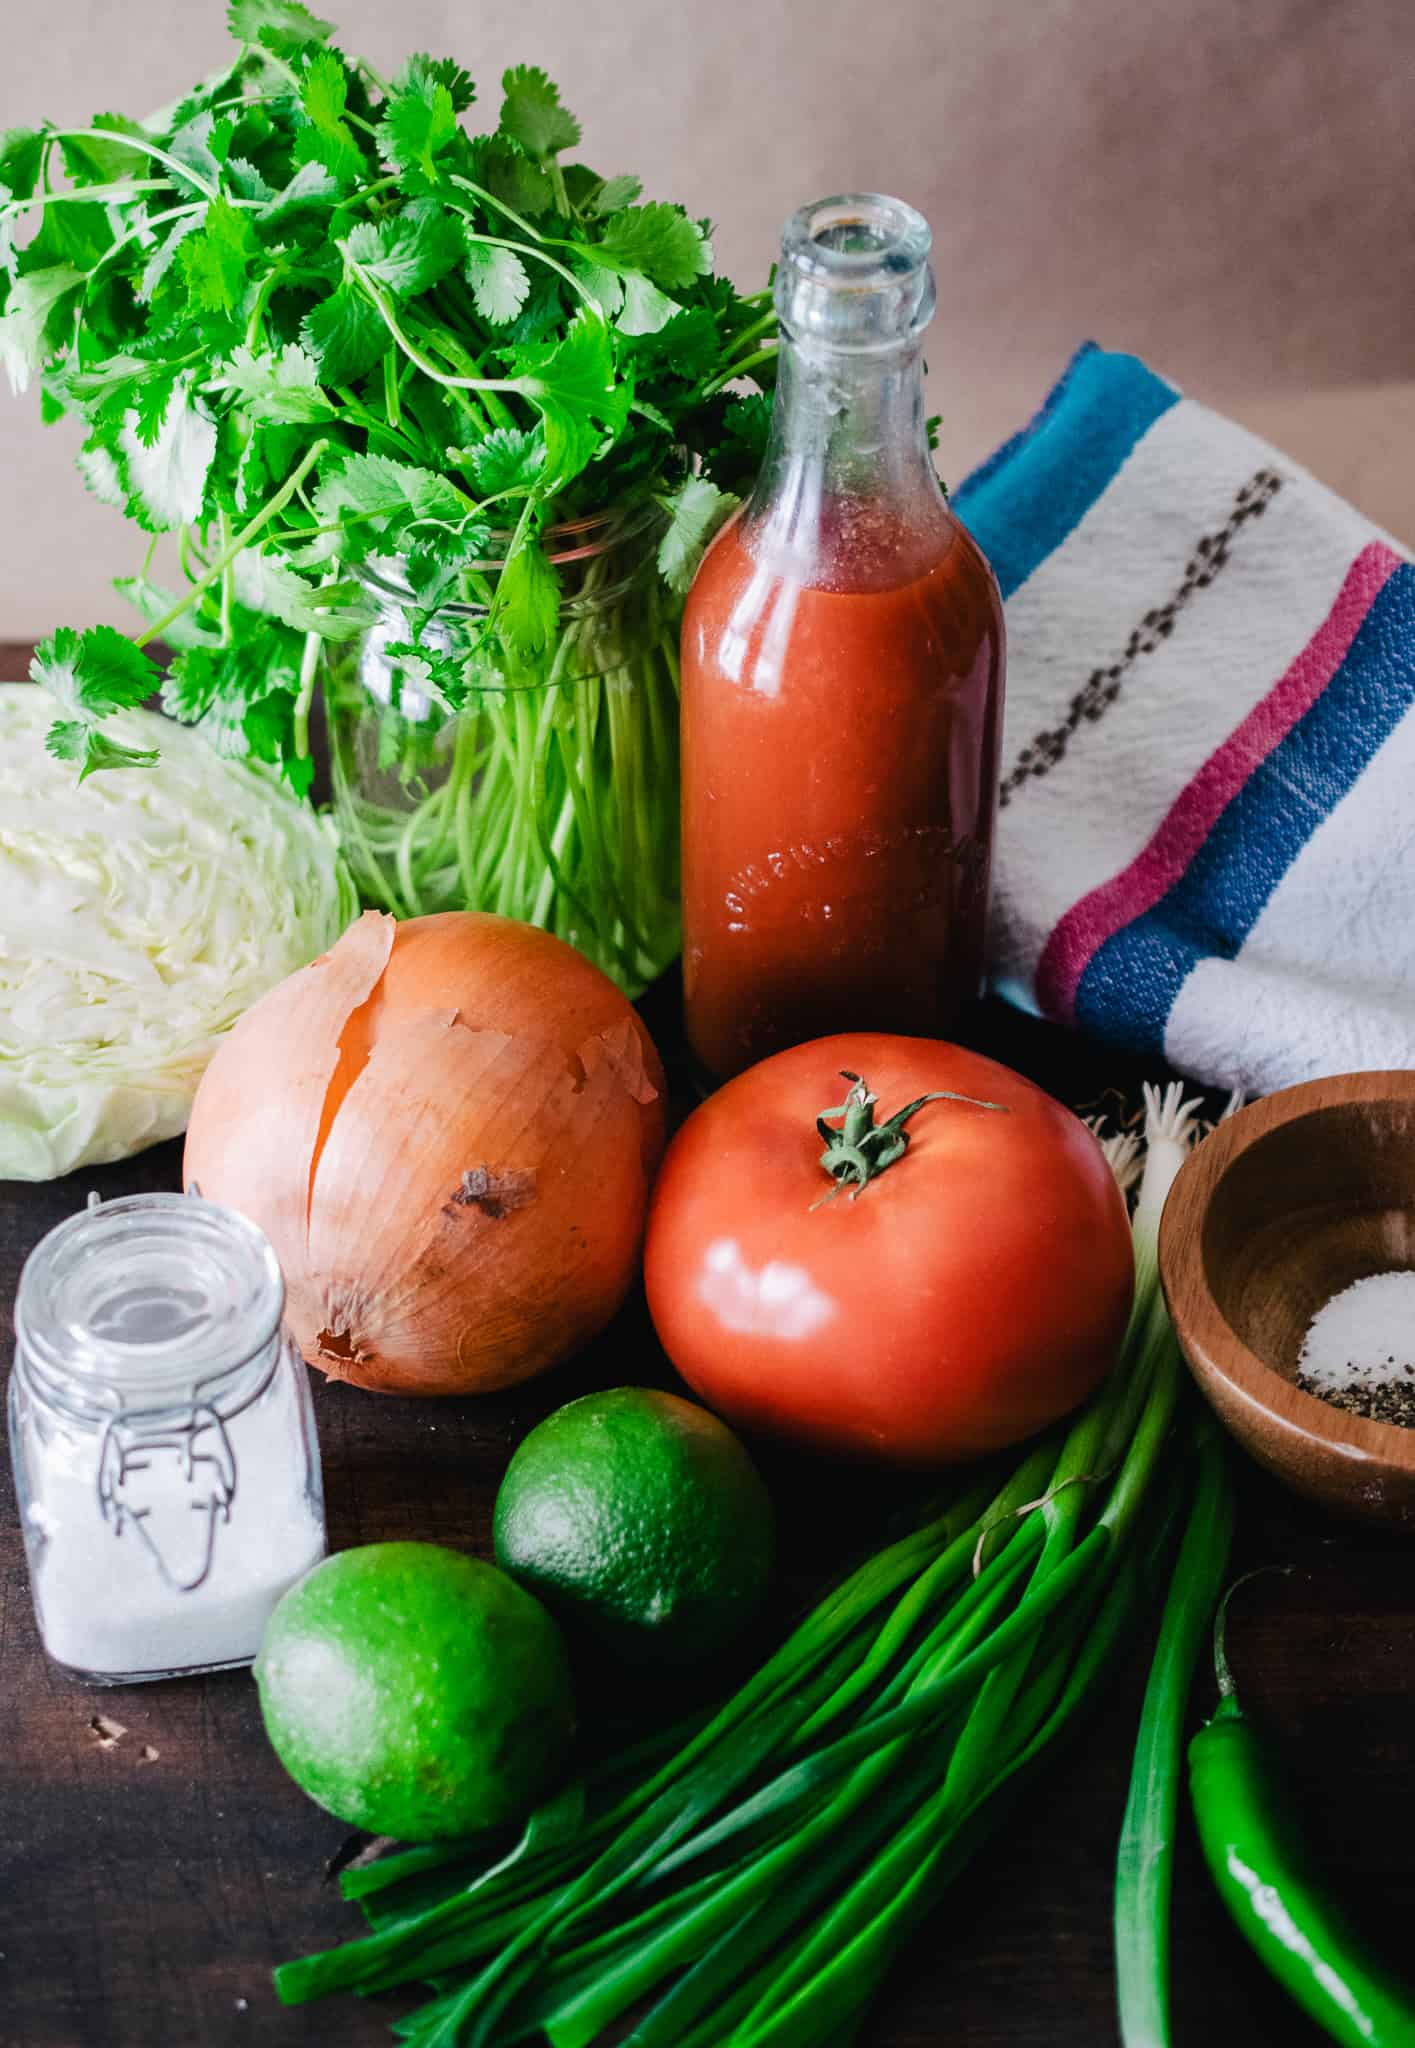 ingredients for homemade pico de gallo with cabbage on wooden surface with Mexican hand woven kitchen towel